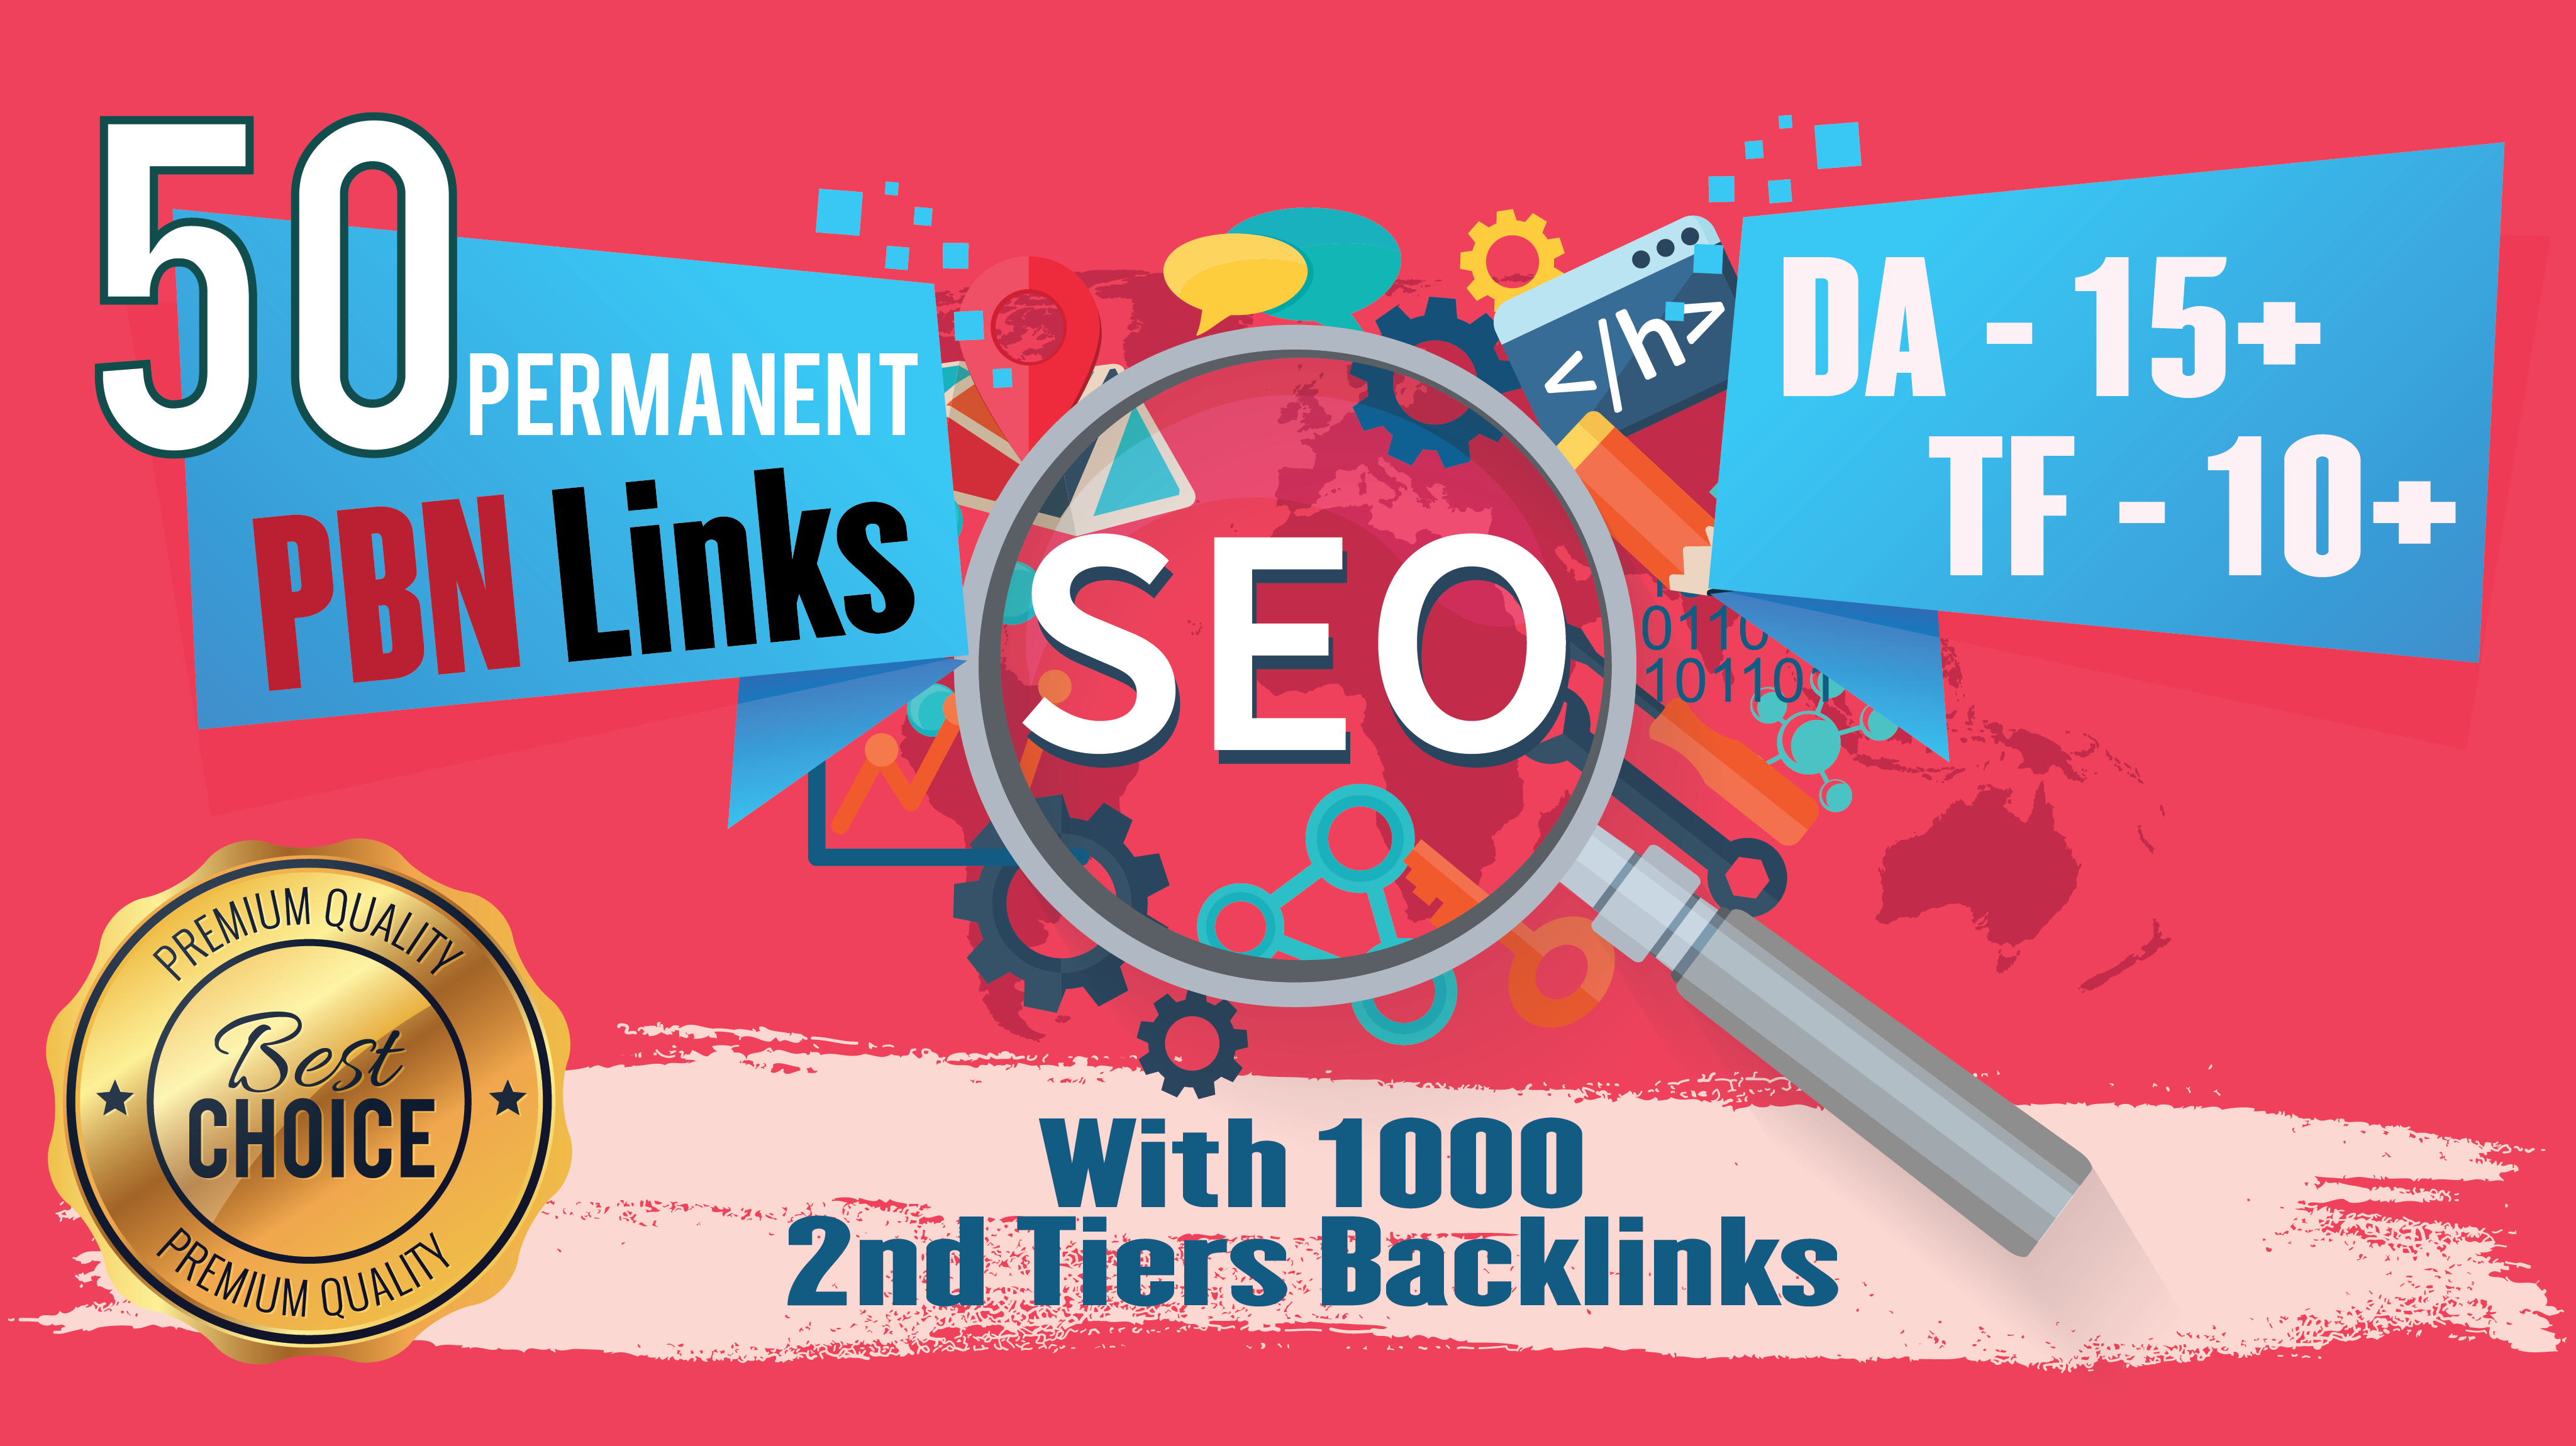 2021 Powerful 50 Homepage Dofollow PBN With 1000 2nd Tiers Backlinks